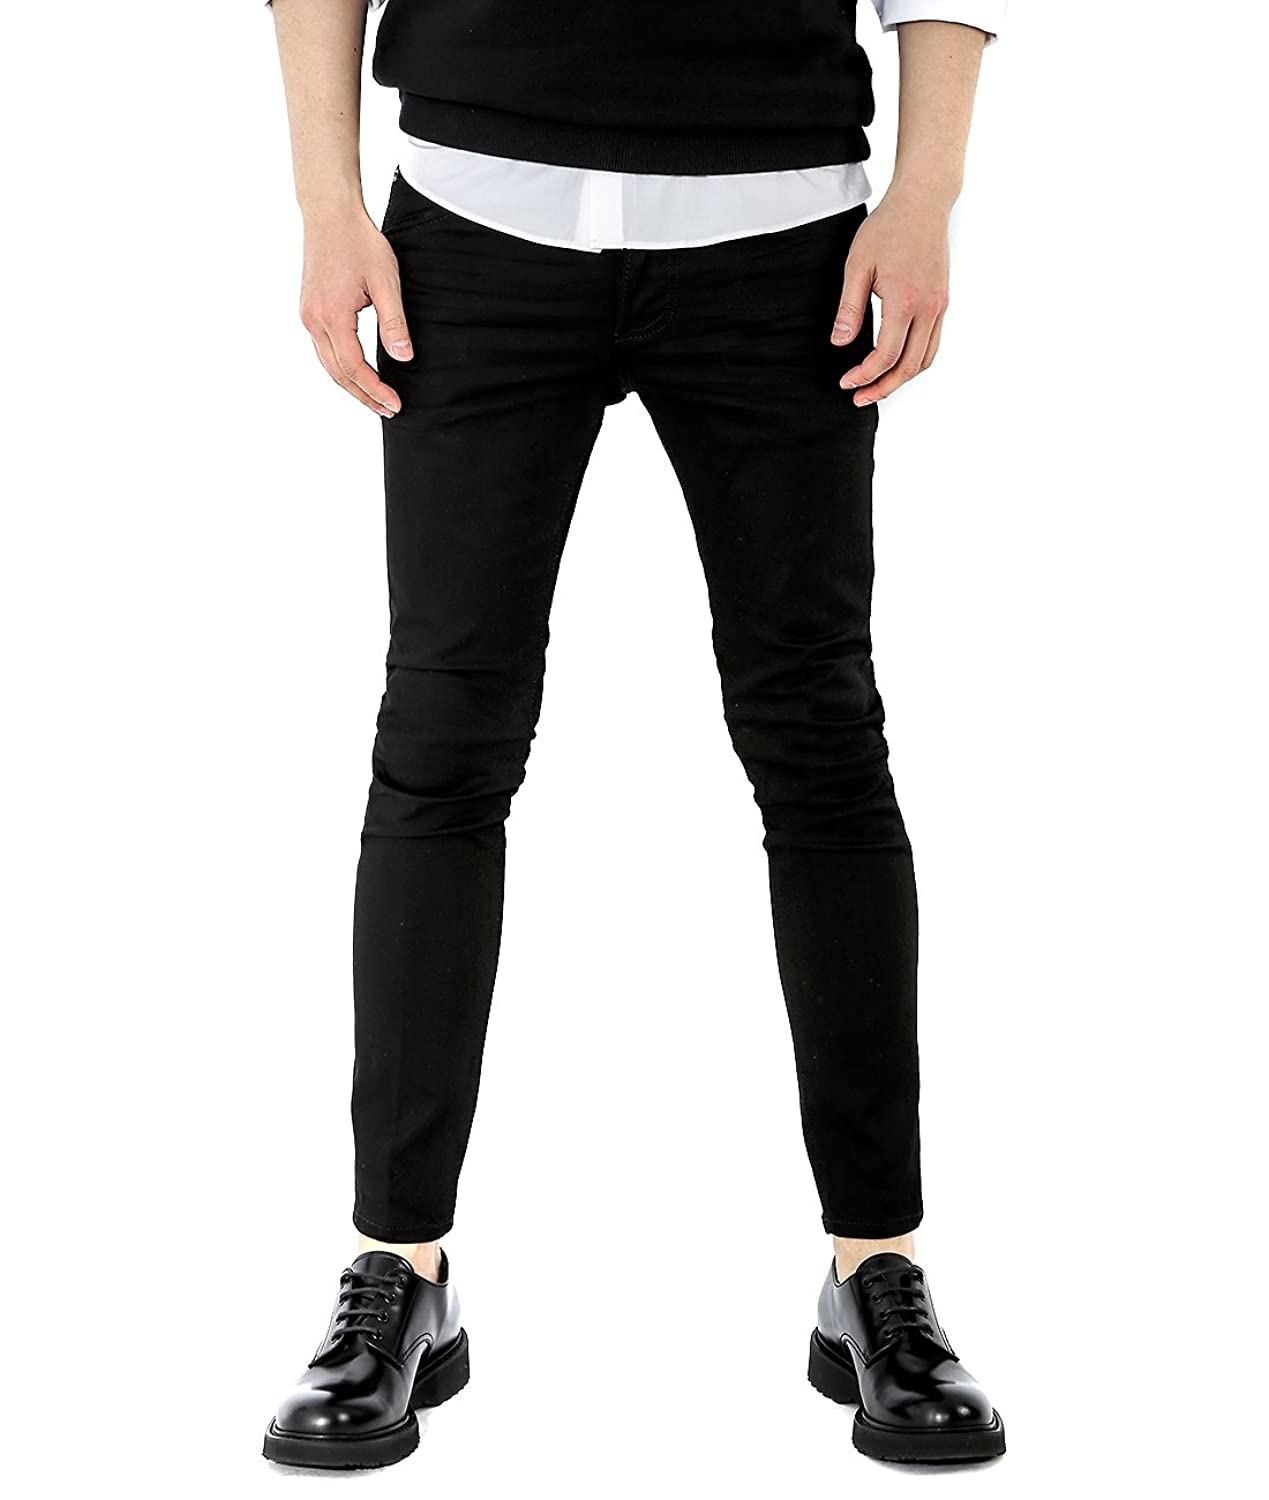 Wiberlux DSquared2 Men's Logo Patch Detailed Skinny Fit Jeans